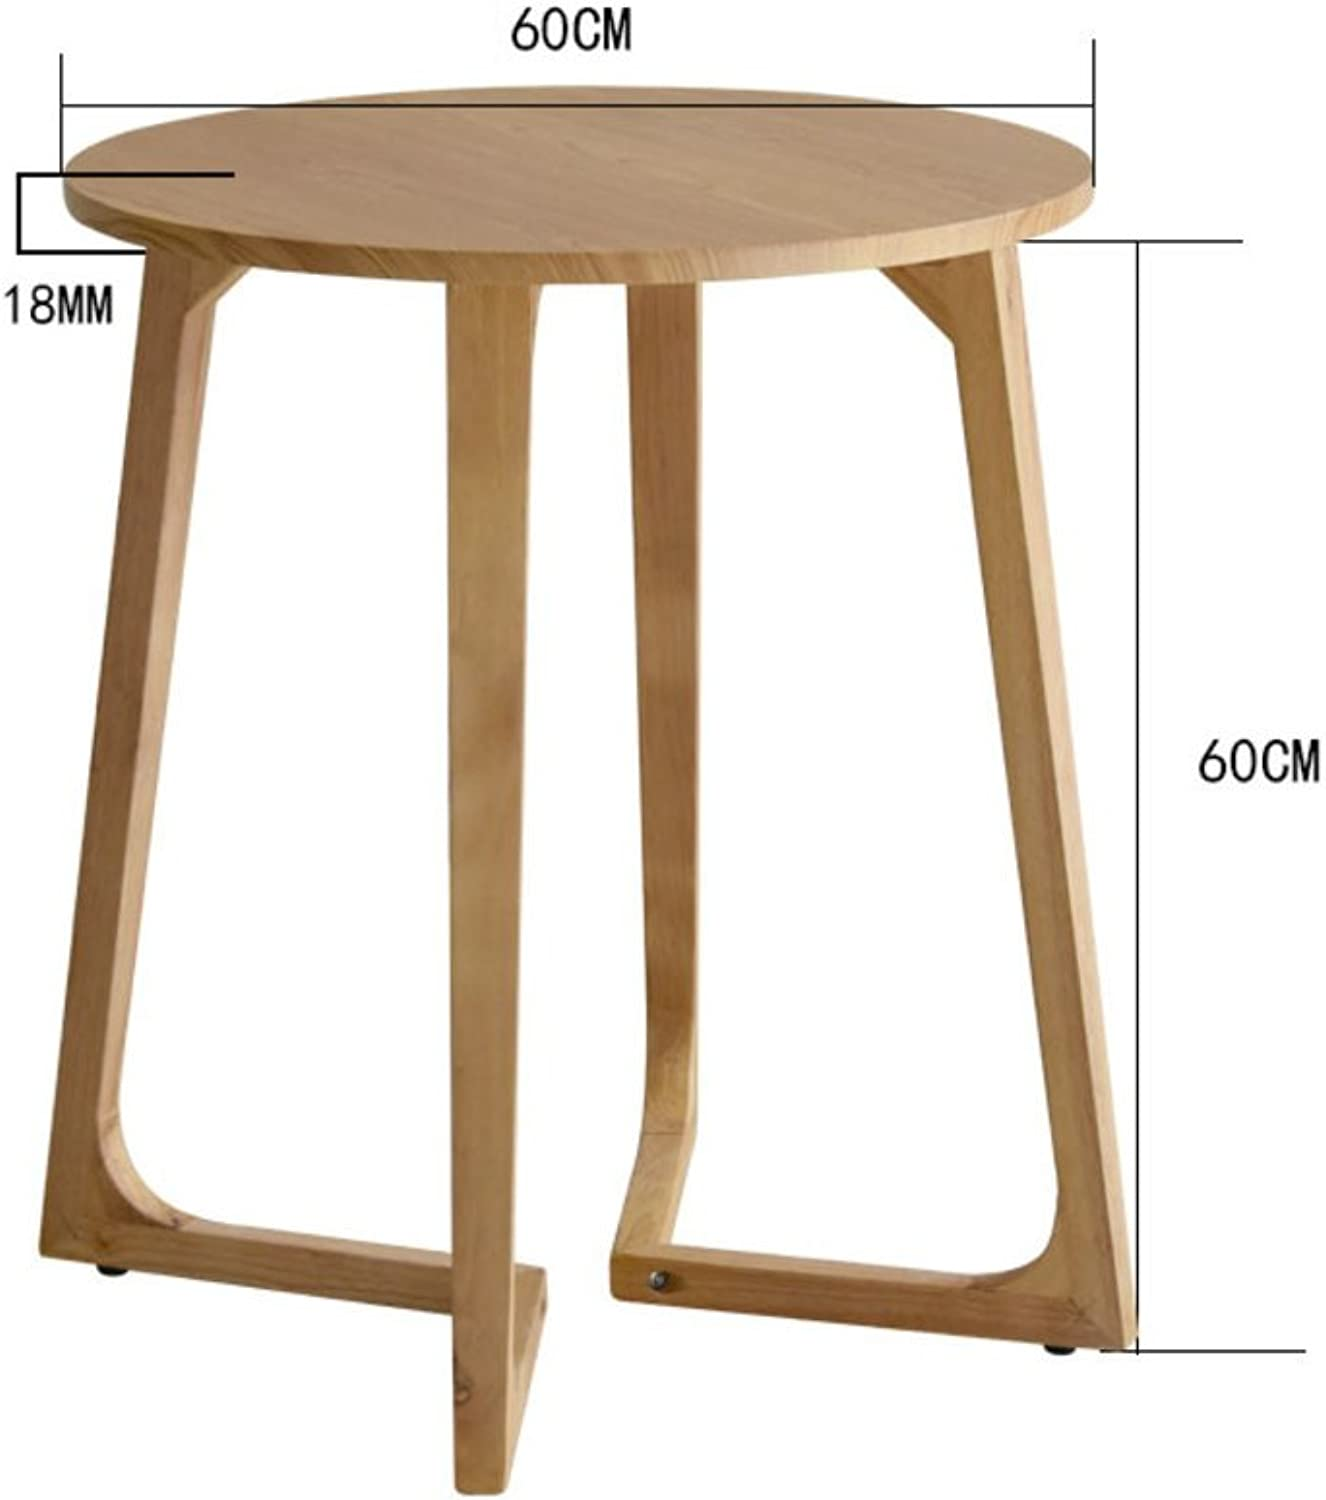 Solid Wood Waterproof Round Side Table, Living Room Sofa Table Coffee Table Bedroom Night Table Telephone Table-Log 60X60cm